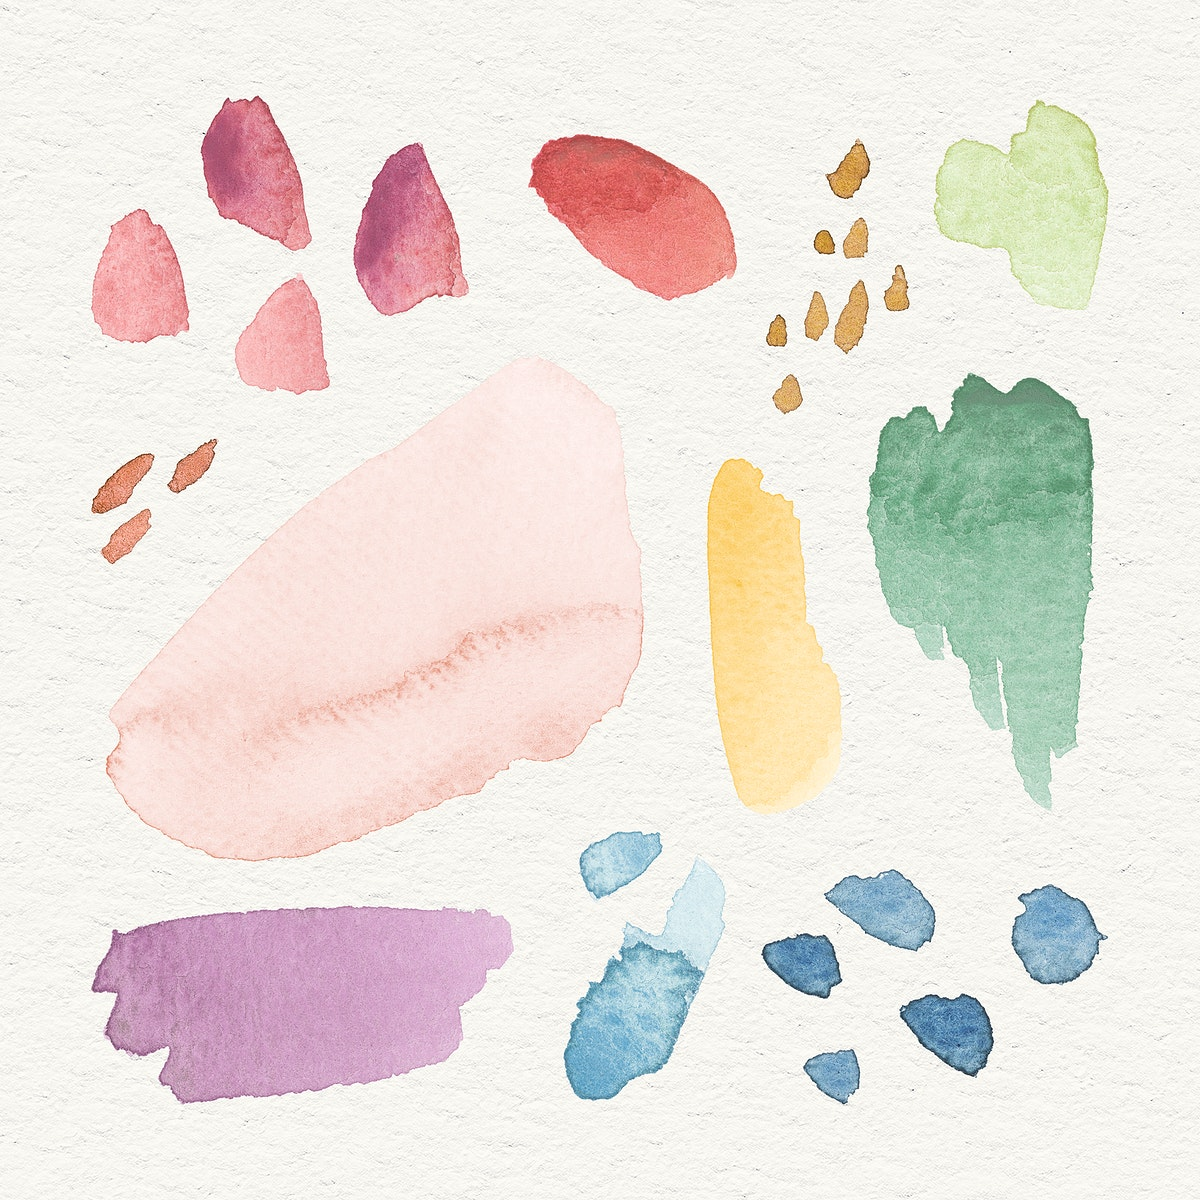 Colorful watercolor patterned background template illustration